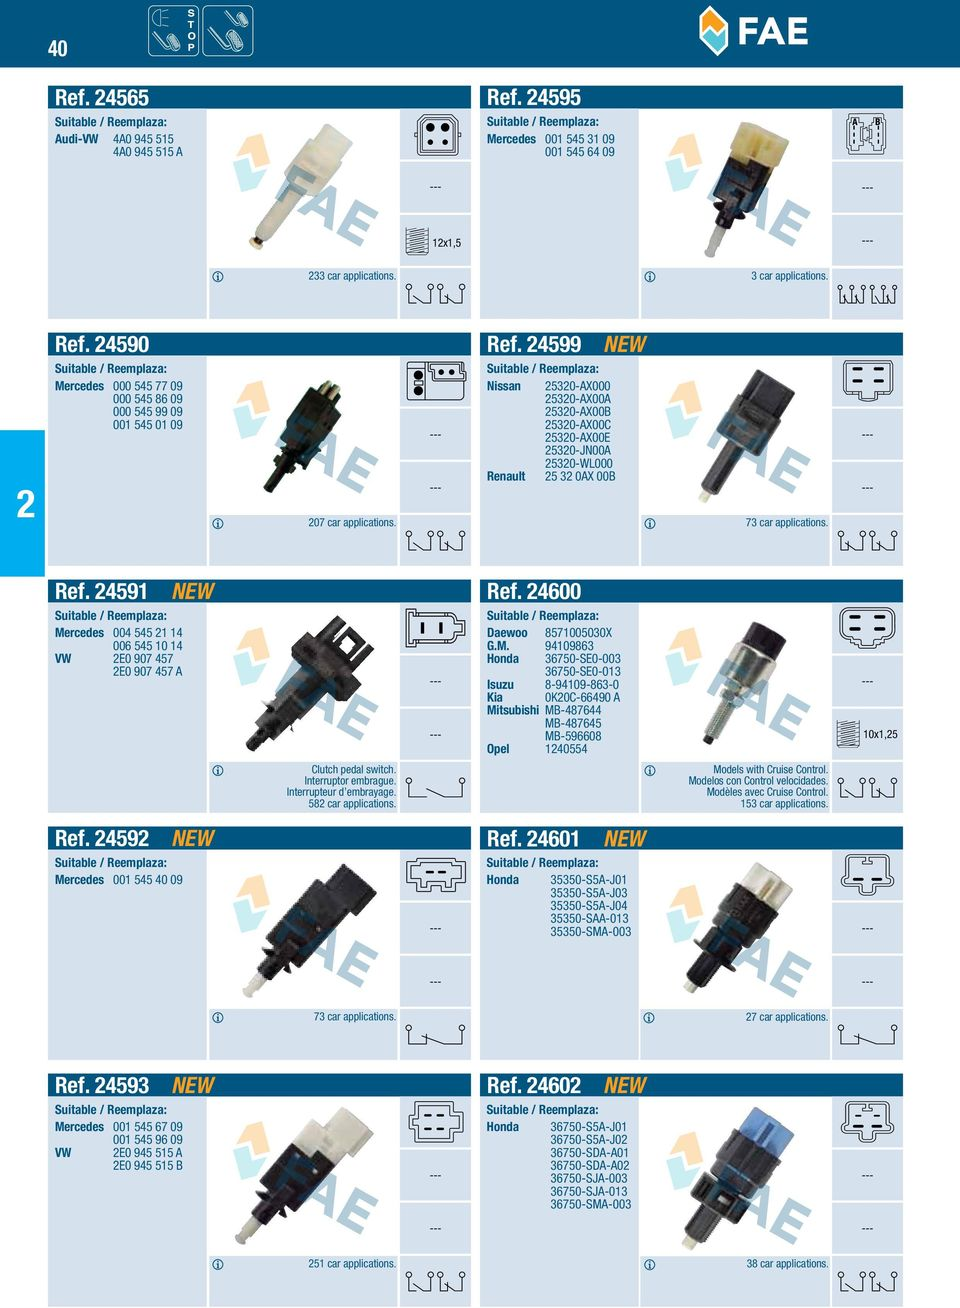 Stop Light Switches And Clutch Pedal Interruptores Luz De Y Gm Cruise Control 4591 Mercedes 004 545 1 14 006 10 Vw E0 907 457